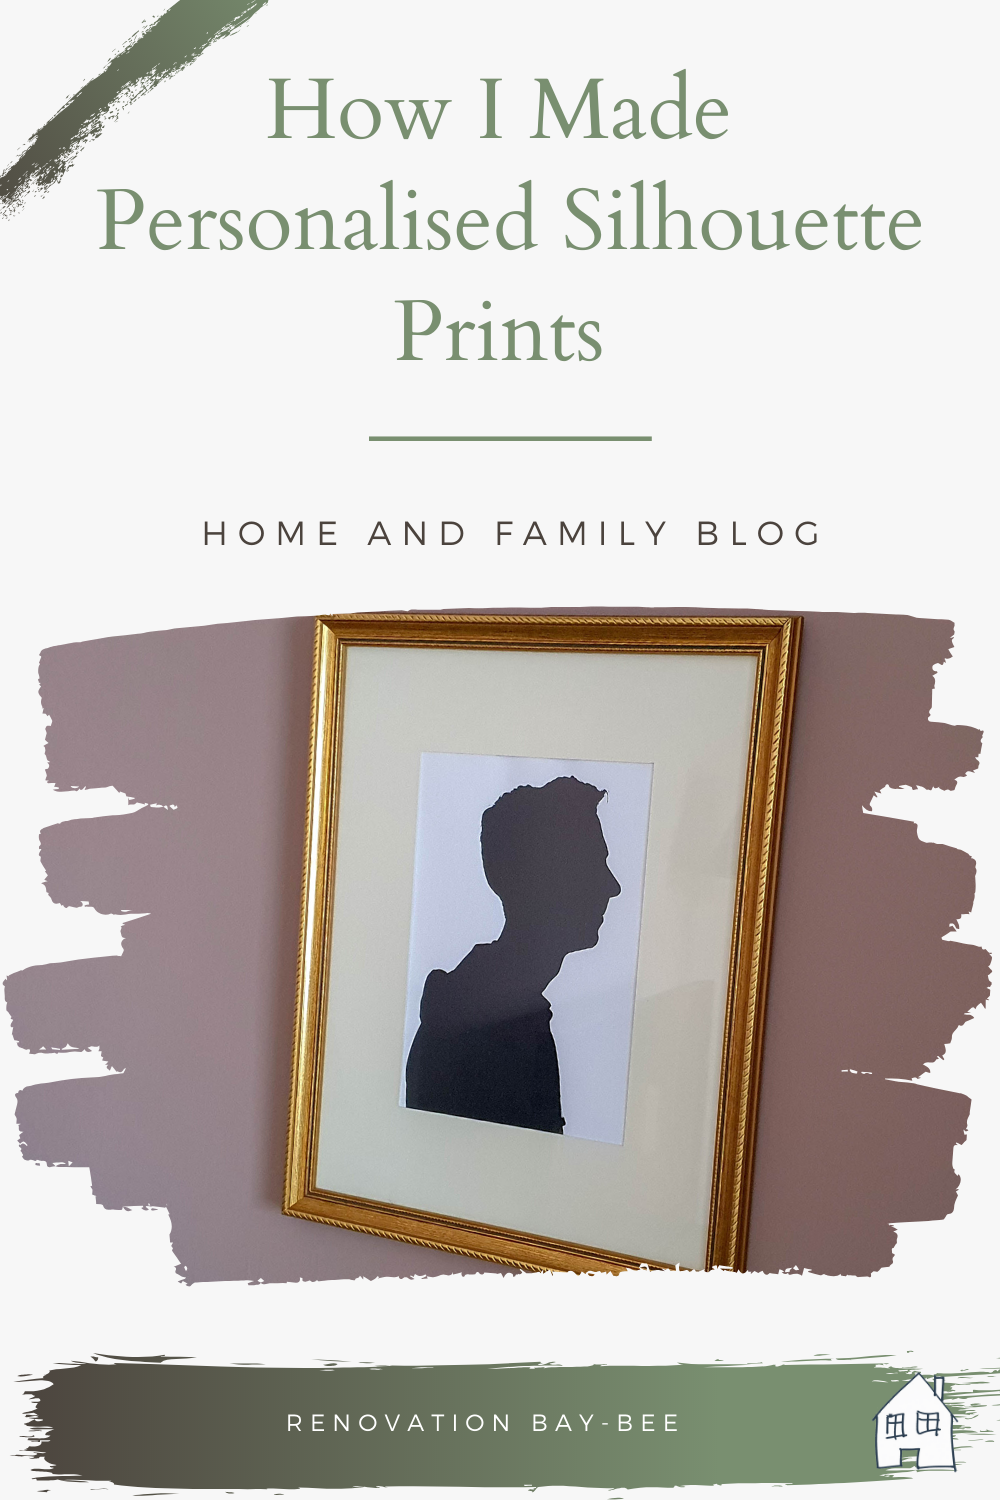 How To Make Personalised Silhouette Prints. I wanted a piece of personalised wall art on my wall in the lounge, so I made Personalised Silhouette Prints. Click through to see how I made our Personalised Silhouette Prints #PersonalisedSilhouettePrints #SilhouettePrints #personalisedwallart #wallart #Silhouetteart